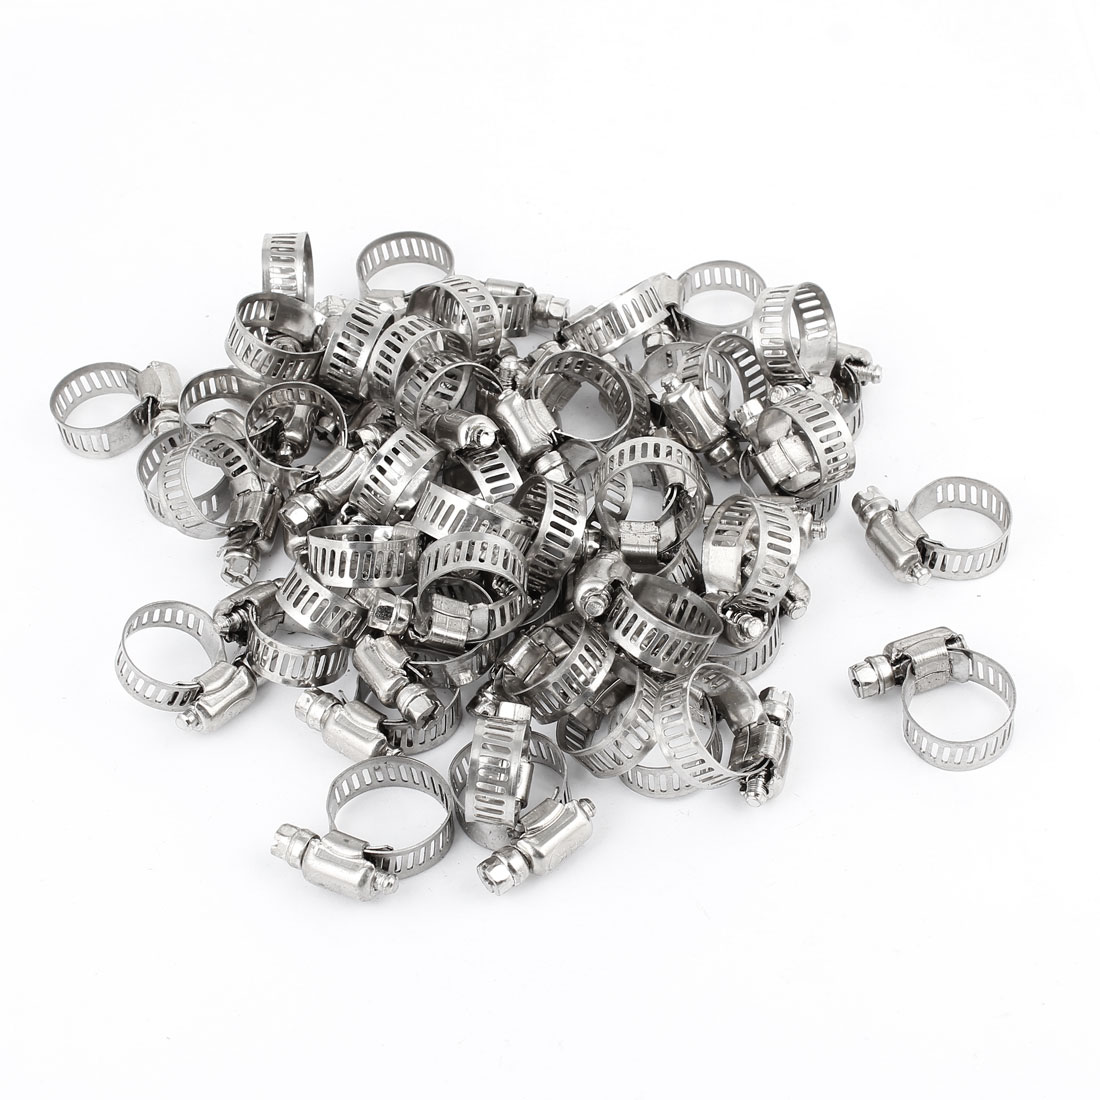 100 Pcs 13mm to 19mm Adjustable Metal Hoop Worm Gear Hose Clamp 10mm Wide Silver Tone Metal